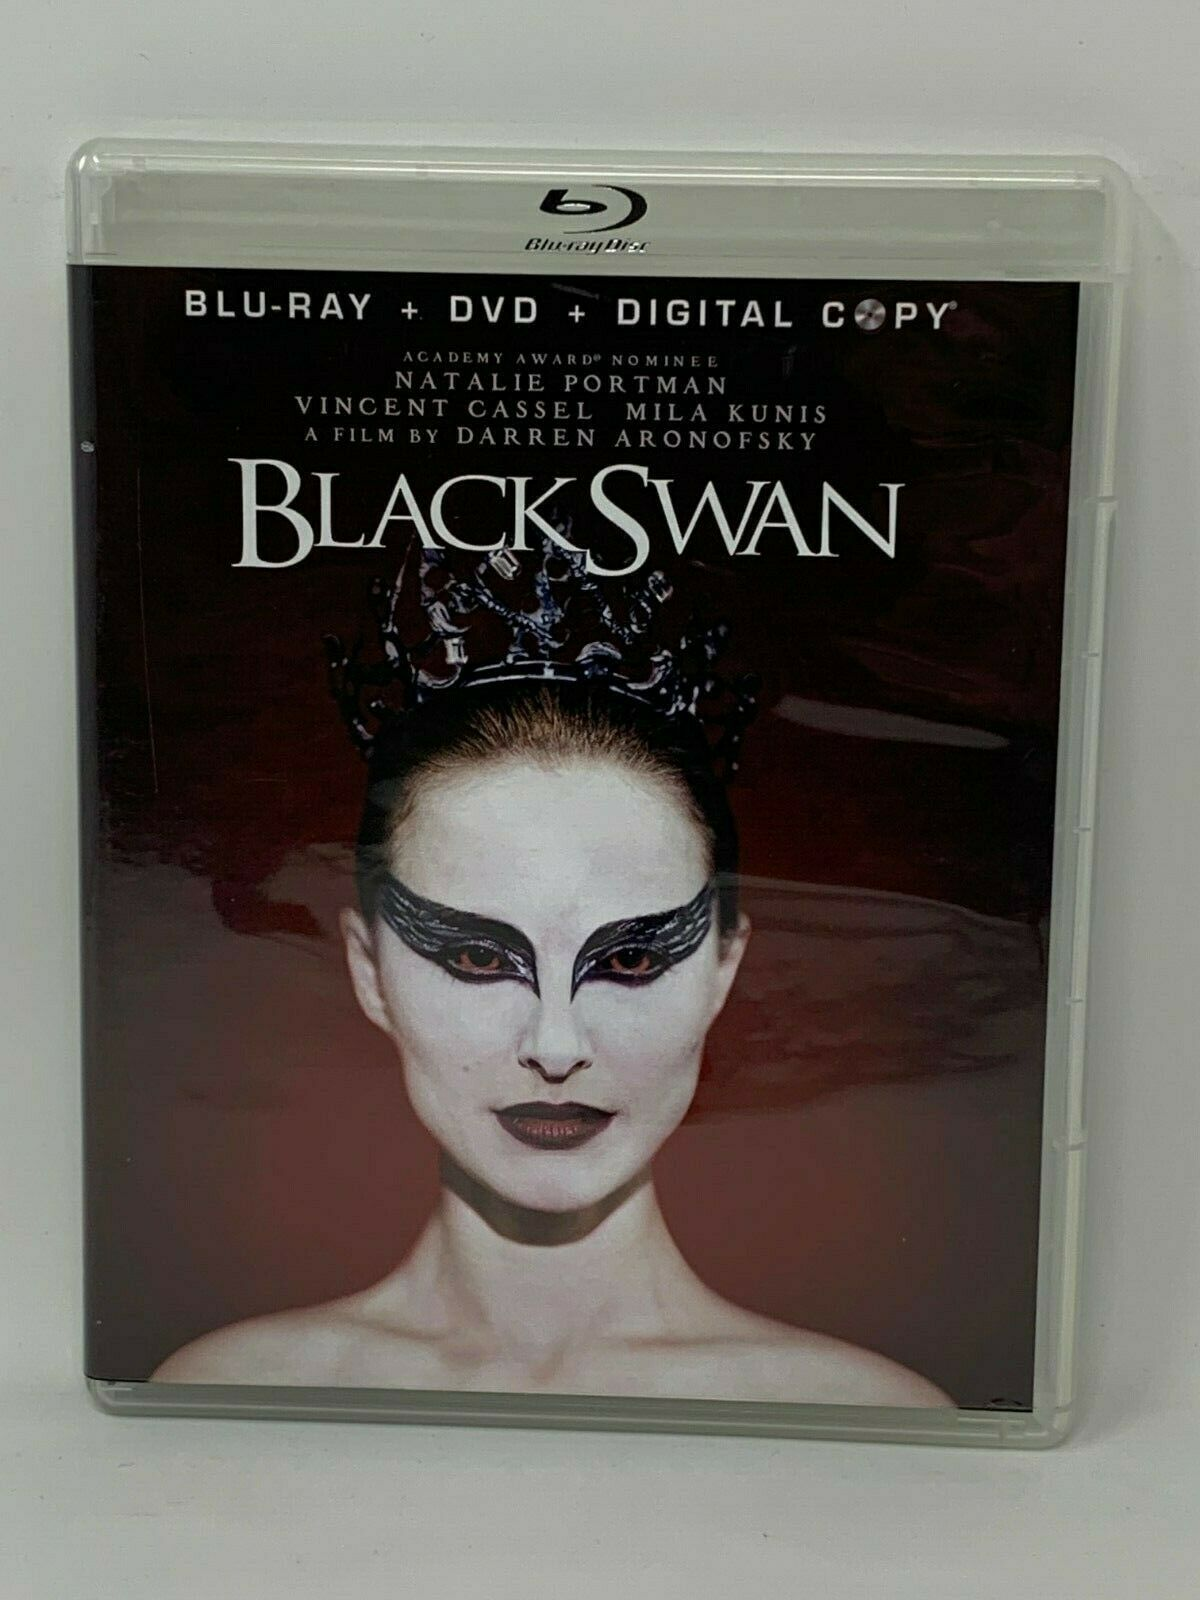 Ass Worship Com black swan (2010) blu-ray + dvd buy 5 get 1 free! pay $3 shipping once!  clear